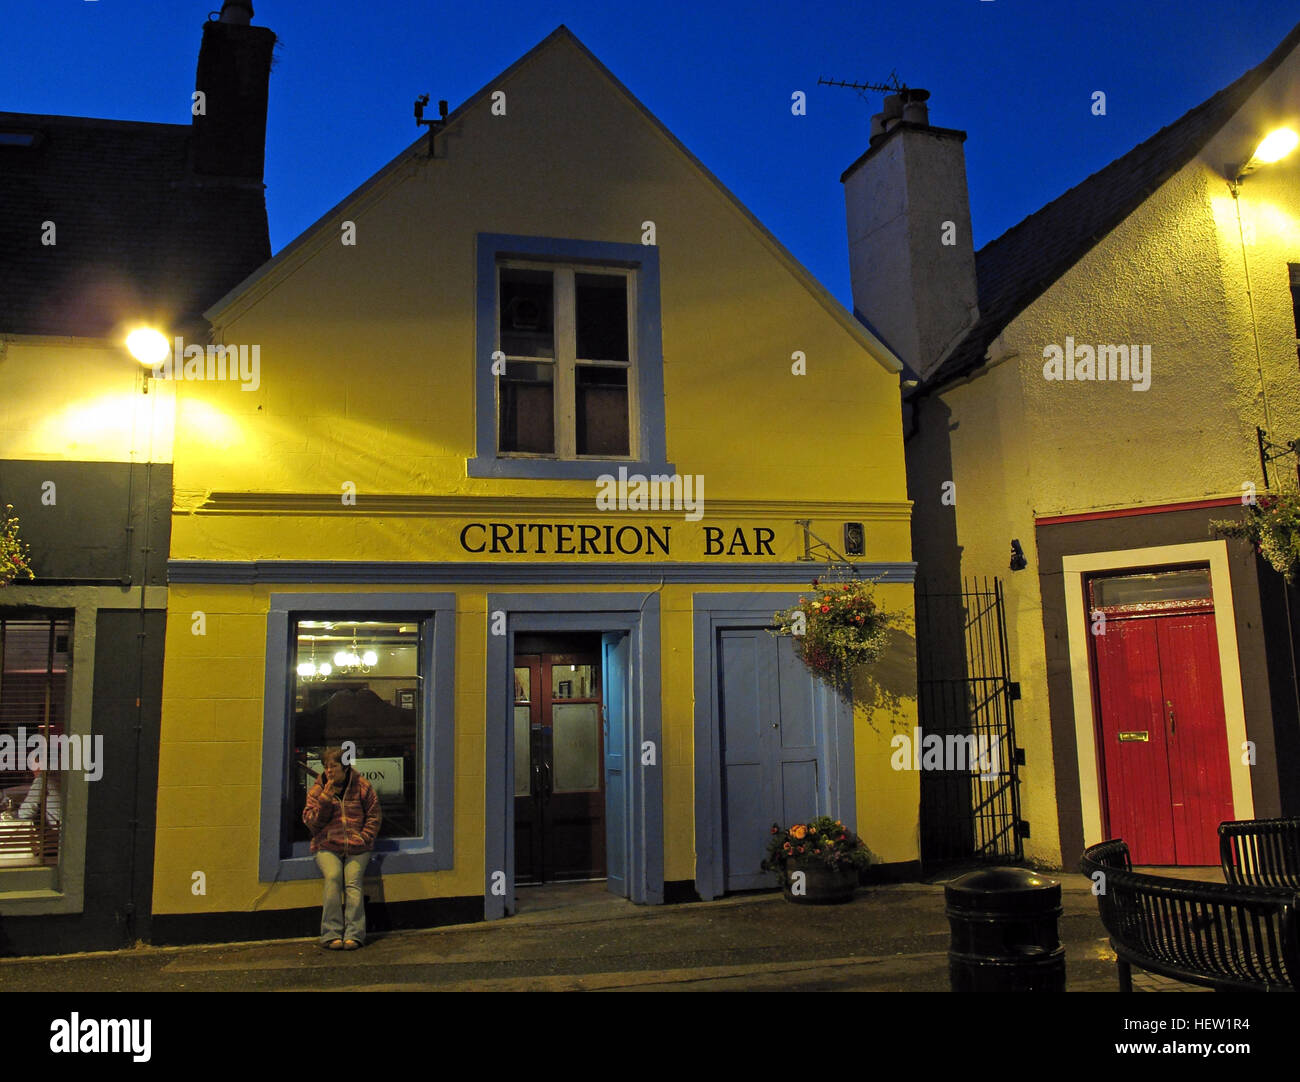 Scotland,Outer,Hebrides,CNES,Comhairle nan Eilean Siar,Comhairle,nan,Eilean,Siar,port,harbour,Criterion Bar,Criterion,Bar,bars,pub,pubs,yellow,street,32 Point St,Stornoway,HS1,2XF,Steòrnabhagh,Na h-Eileanan Siar,Western Isles,Leòdhas,Eilean,CNES,Alba,HS1 2XF,Eilean Leòdhais,Stornoway town,GoTonySmith,@HotpixUK,Tony,Smith,UK,GB,Great,Britain,United,Kingdom,Scottish,British,Scotland,problem,with,problem with,issue with,Centre,Art,Artists,social,tour,tourism,tourists,Lewis,Stornoway,outer Hebrides,outer,isles,islands,West Scotland,Stornoway Town,Town,Urban,Isle of Lewis,Steòrnabhagh,iconic,Alba,Celtic,@HotpixUK,HotpixUK,tour,tourist,attraction,travel,Scots,SNP,independance,independence,Buy Pictures of,Buy Images Of,Images of,Stock Images,Tony Smith,United Kingdom,Great Britain,British Isles